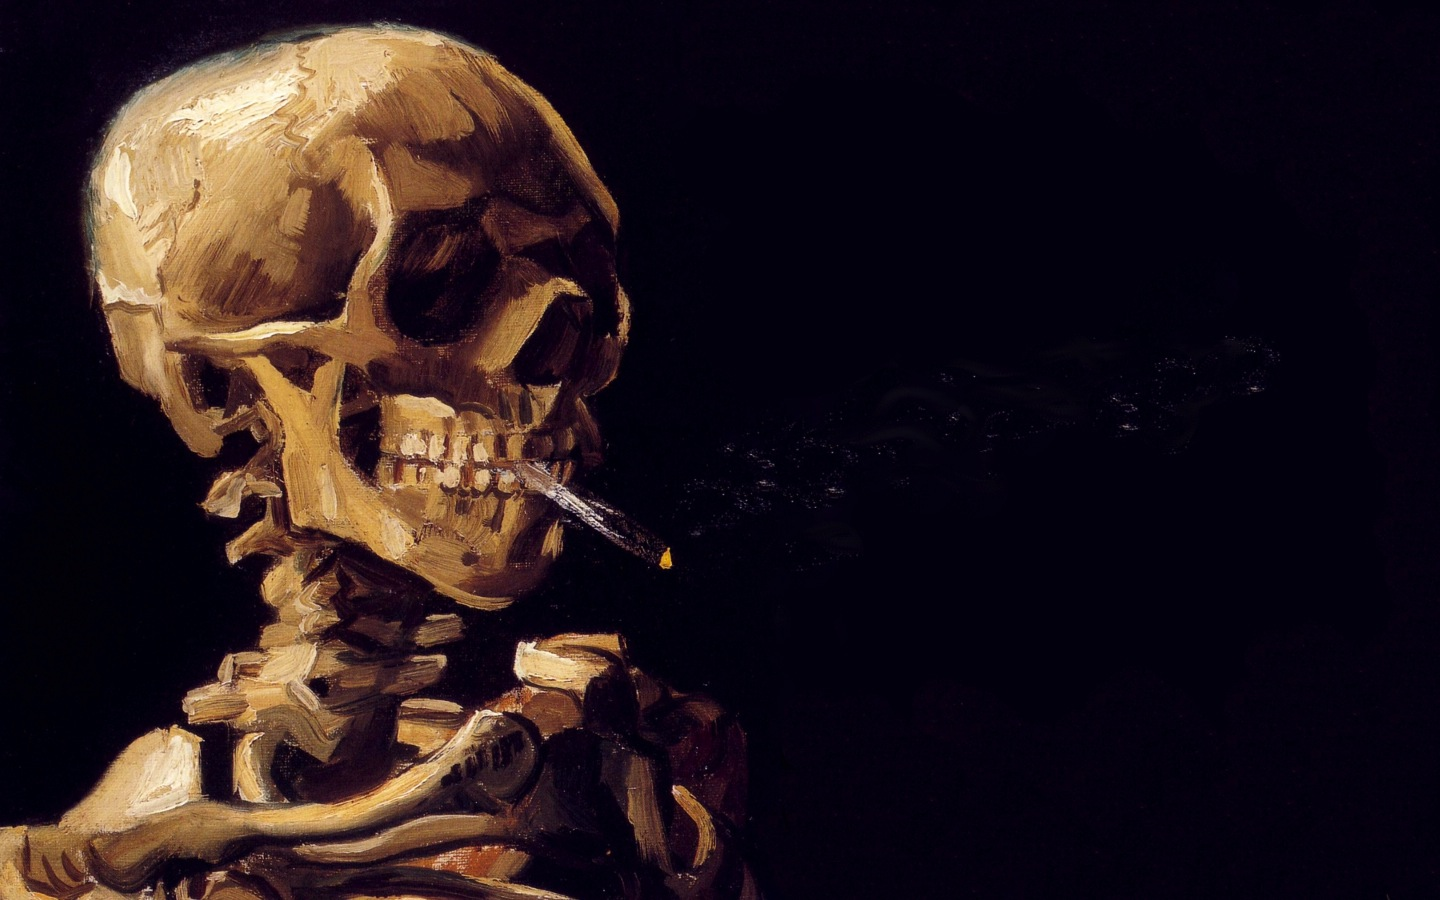 smoking_skeletons_vincent_van_gogh_cigarettes_skeleton_cigarette_desktop_1440x900_hd-wallpaper-9286811